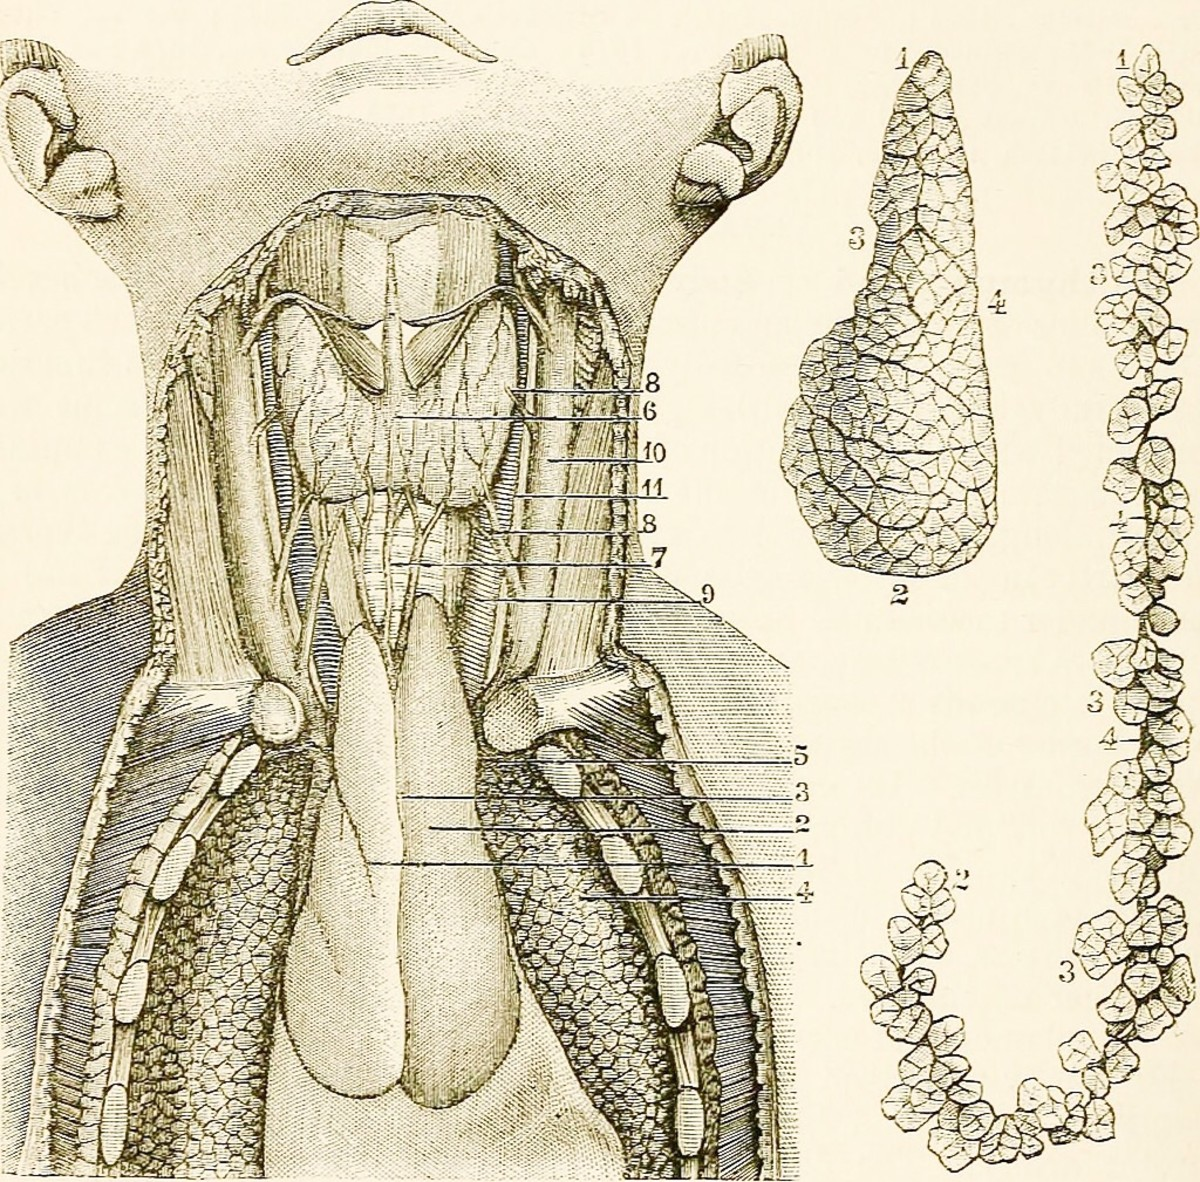 The Thymus Gland, T Cells, AIDS, and Myasthenia Gravis